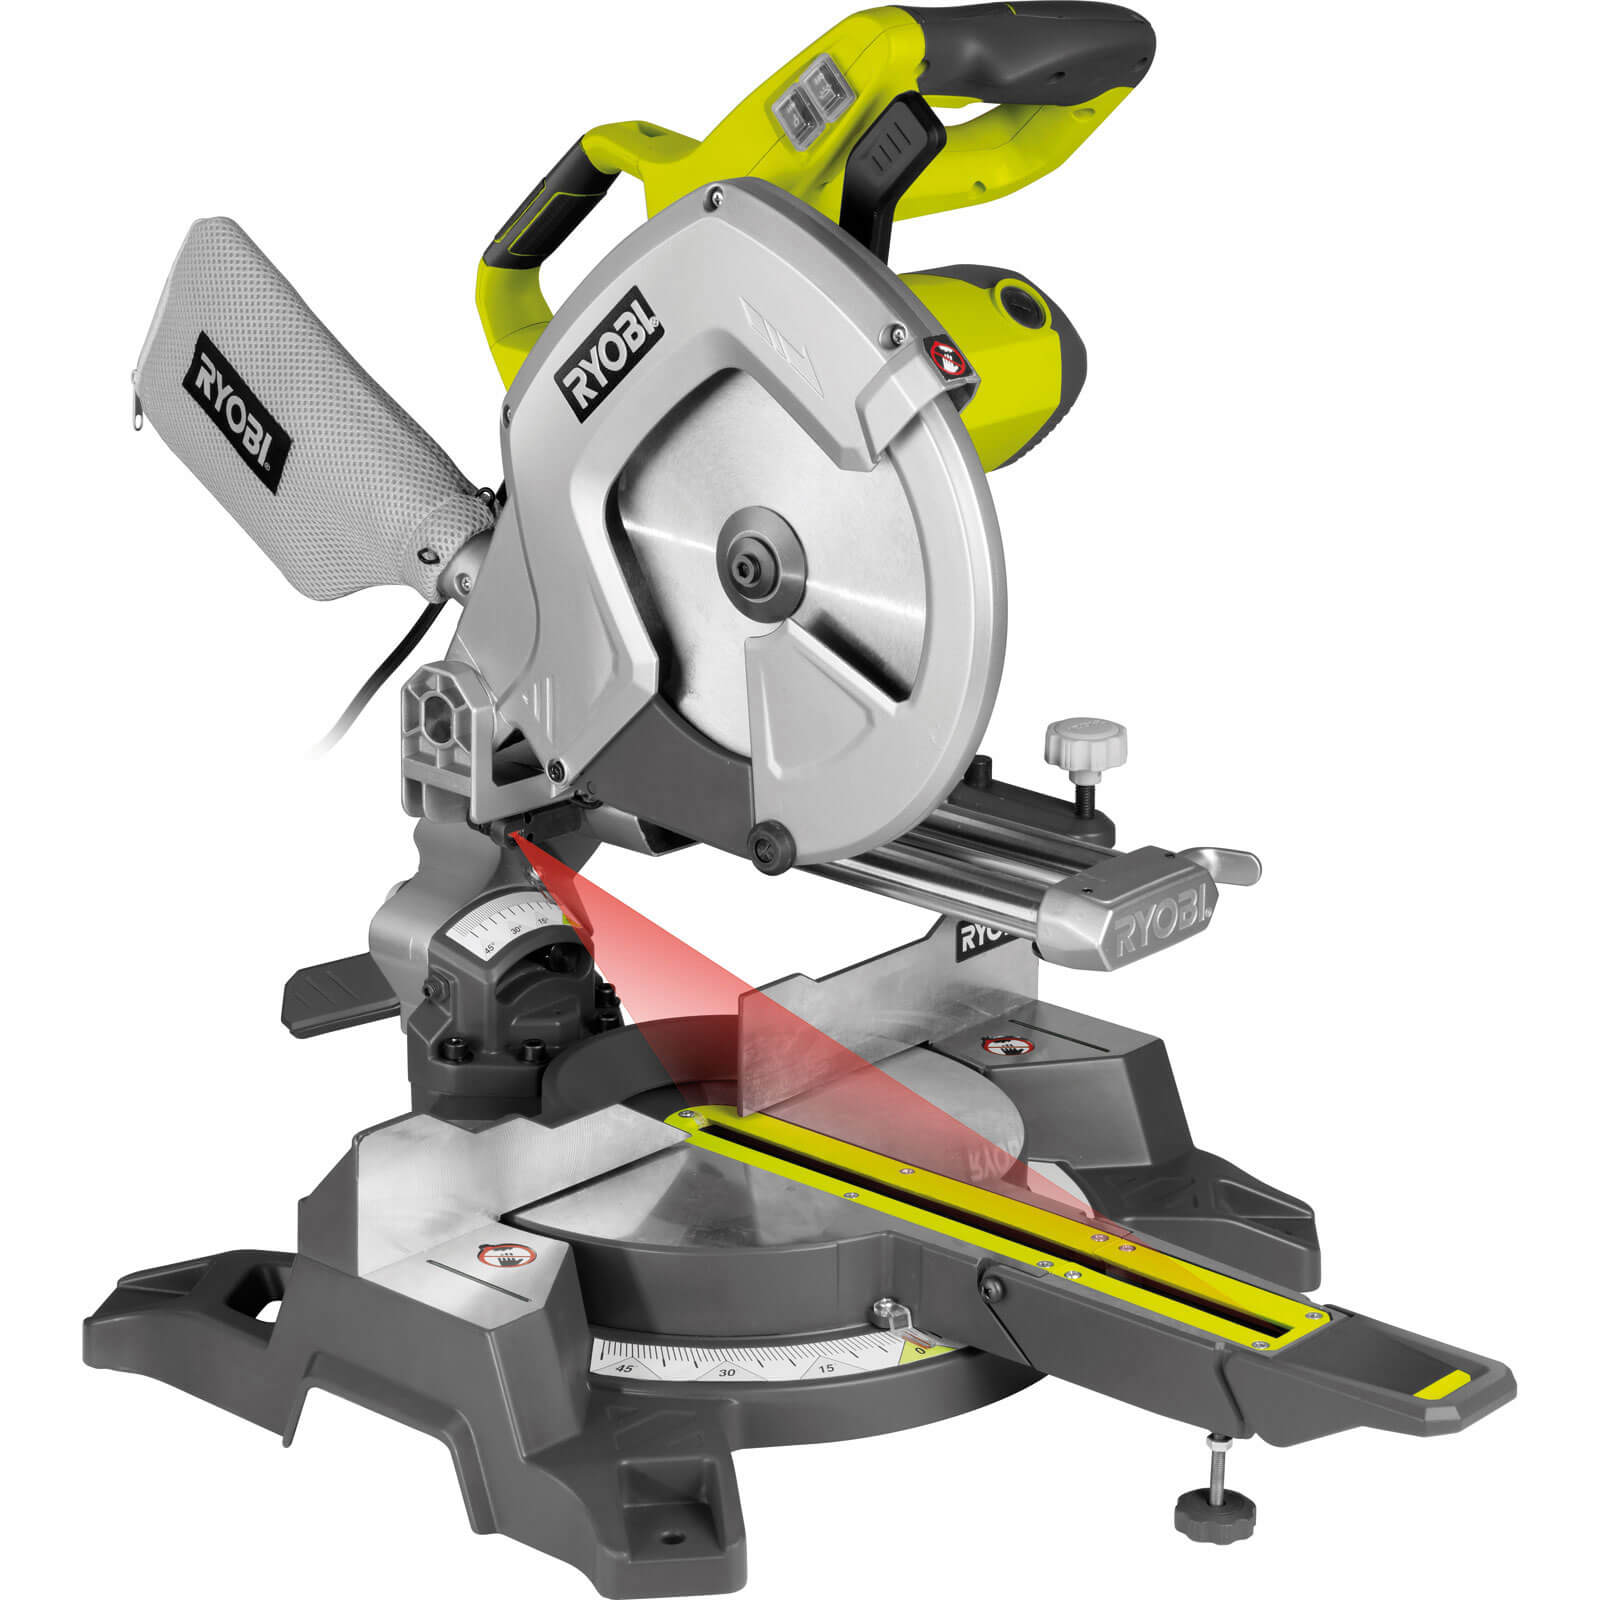 Ryobi mitre saw shop for cheap power tools and save online for Troncatrice parkside